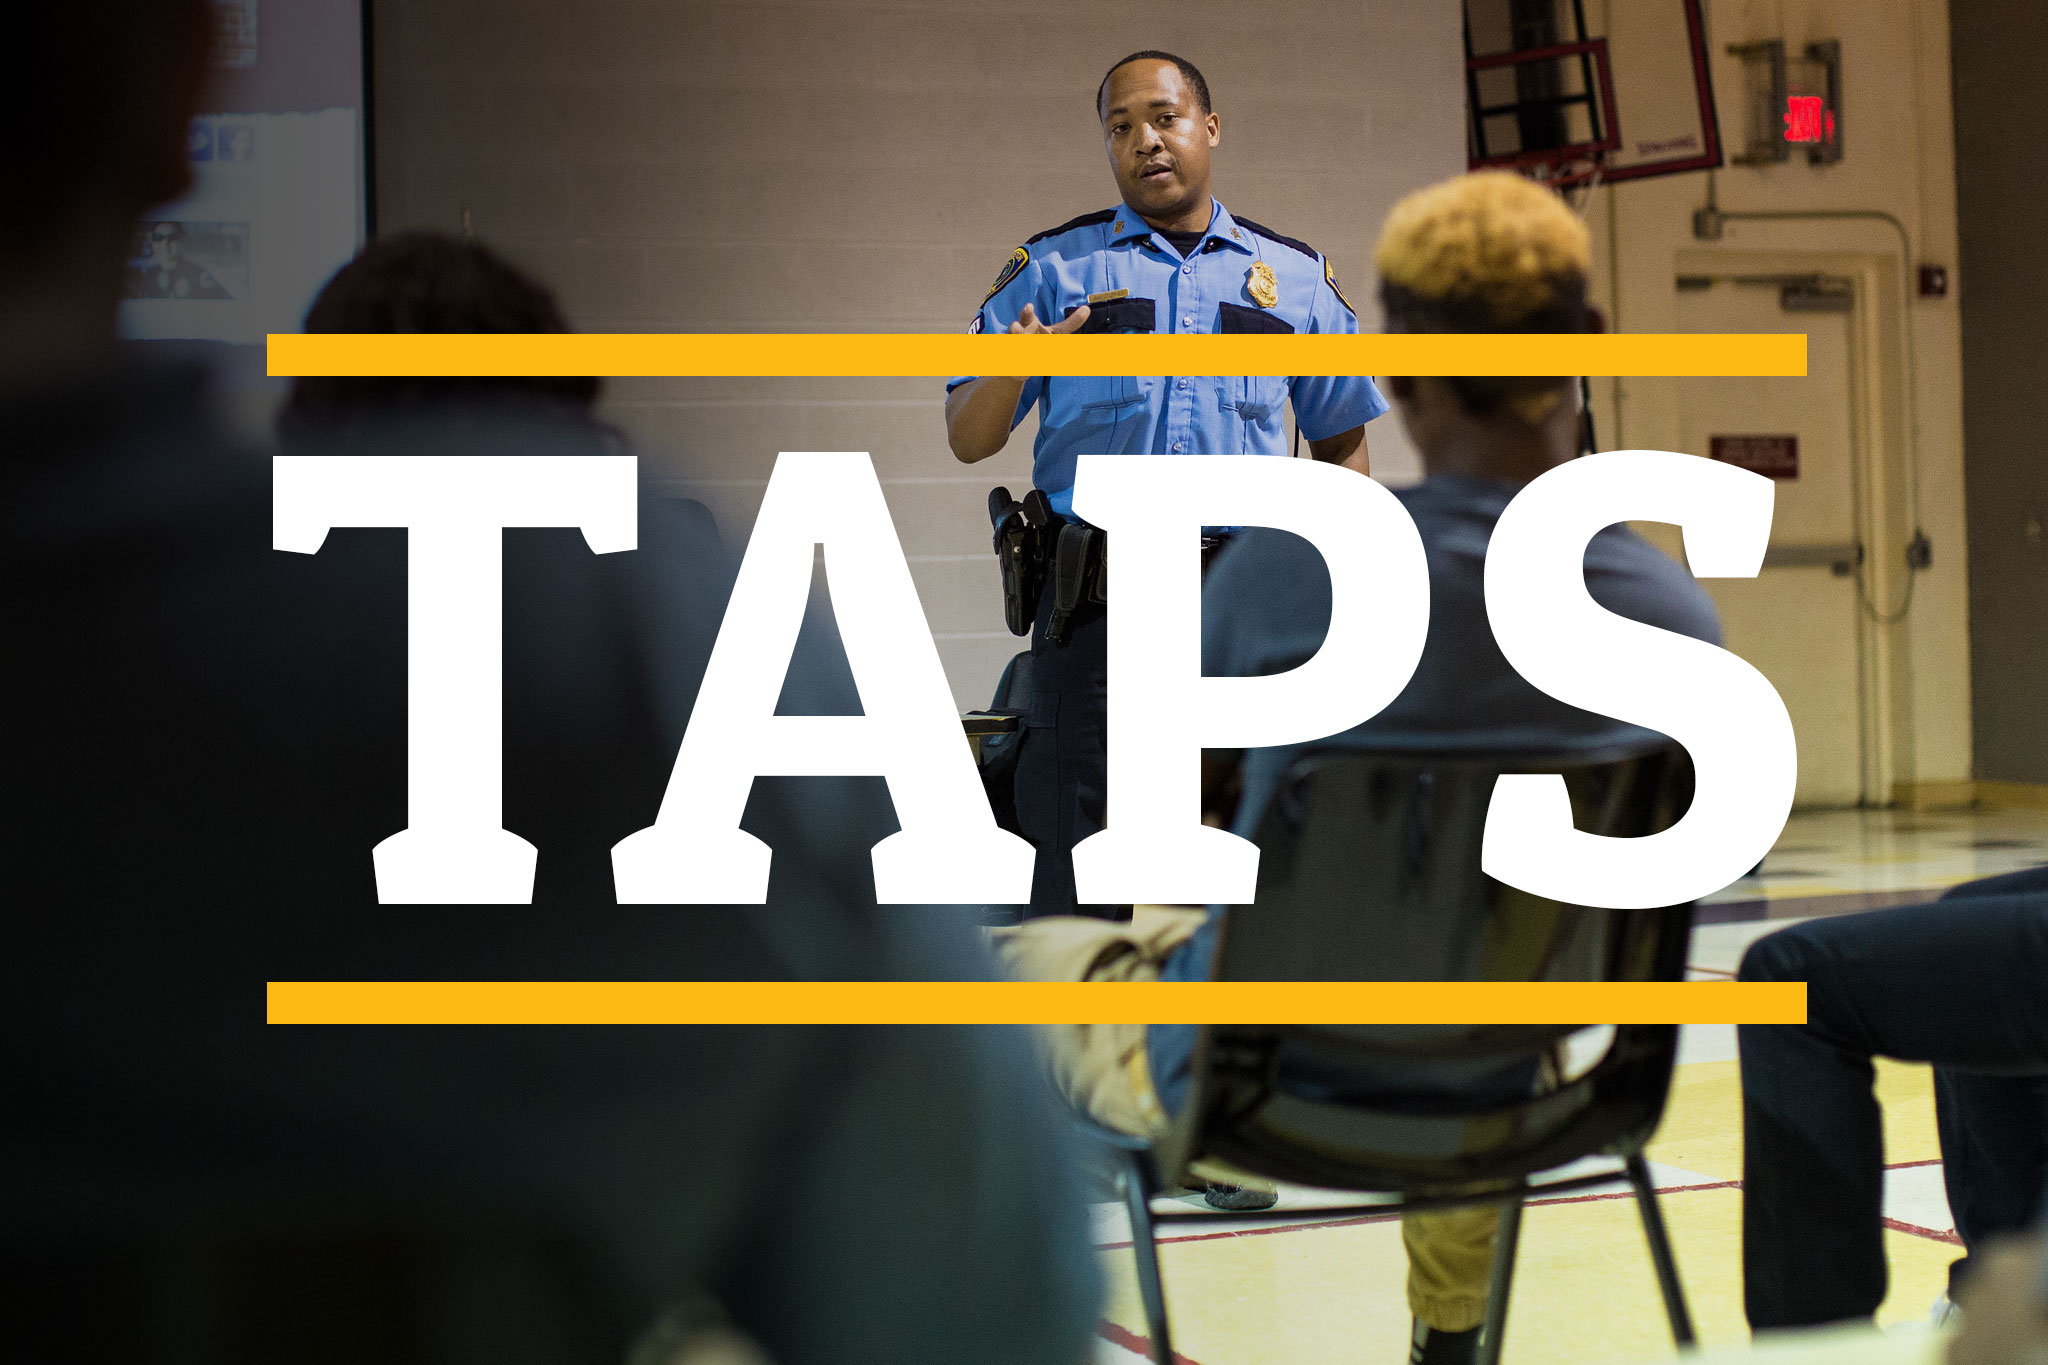 Promotional Image: In 2012, UHCL Professor of Criminology Everett Penn and Houston Police Department Assistant Chief Brian Lumpkin founded the Teen and Police Service Academy (TAPS) to bridge the divide between at-risk youth and law enforcement. Nearly three years later, the program has expanded to cities around the nation and in other countries, changing lives along the way.  The image links to http://uhclthesignal.com/wordpress/tapspage/ - the special topic page examining TAPS. Photo by The Signal reporter Travis Pennington.